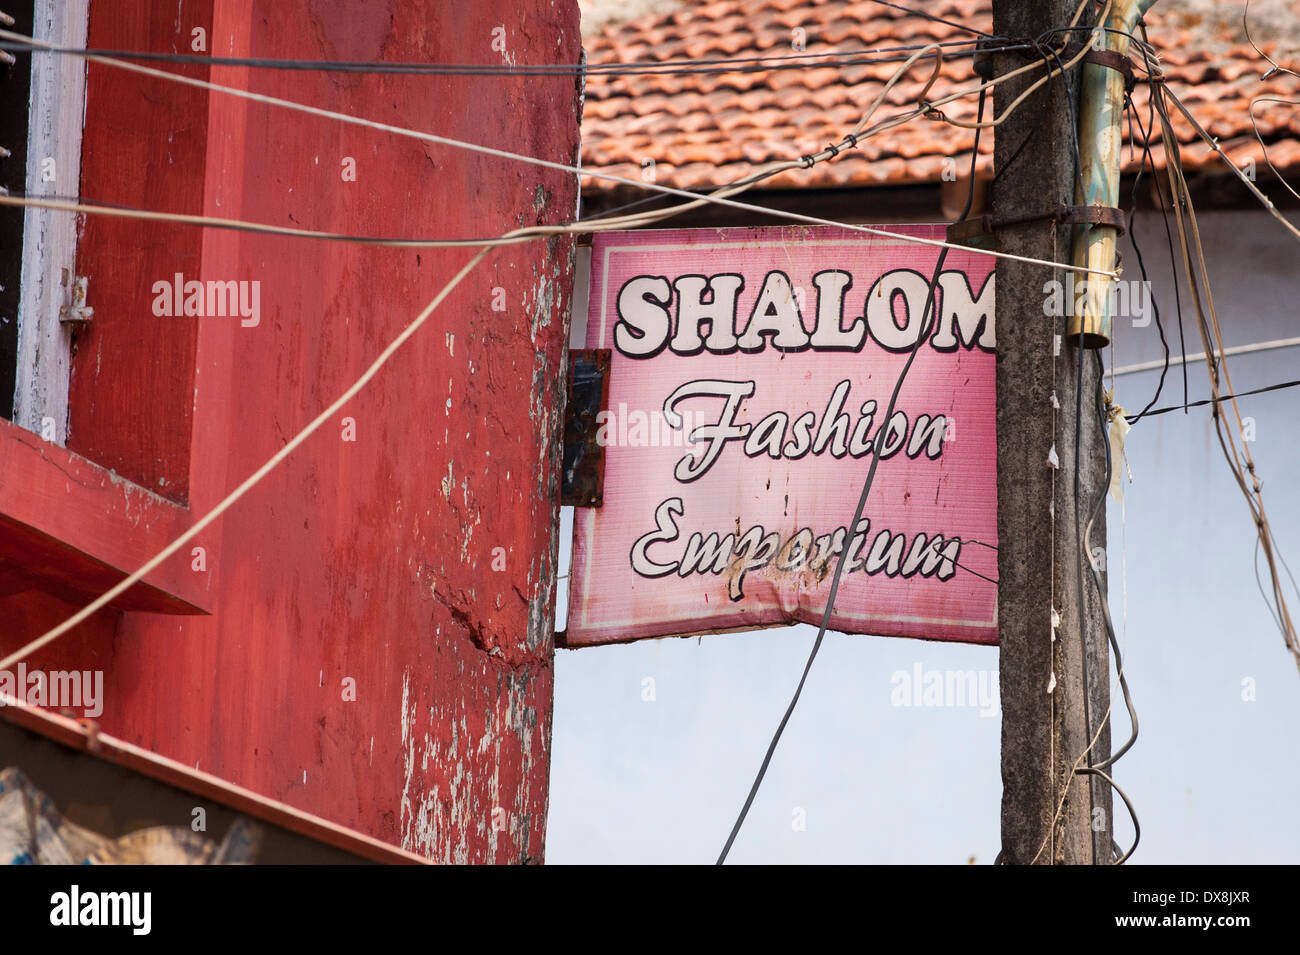 South Southern India Kerala Cochin Kochi Jew Town Mattancherry street road sign signs Shalom Fashion Emporium shop store - Stock Image